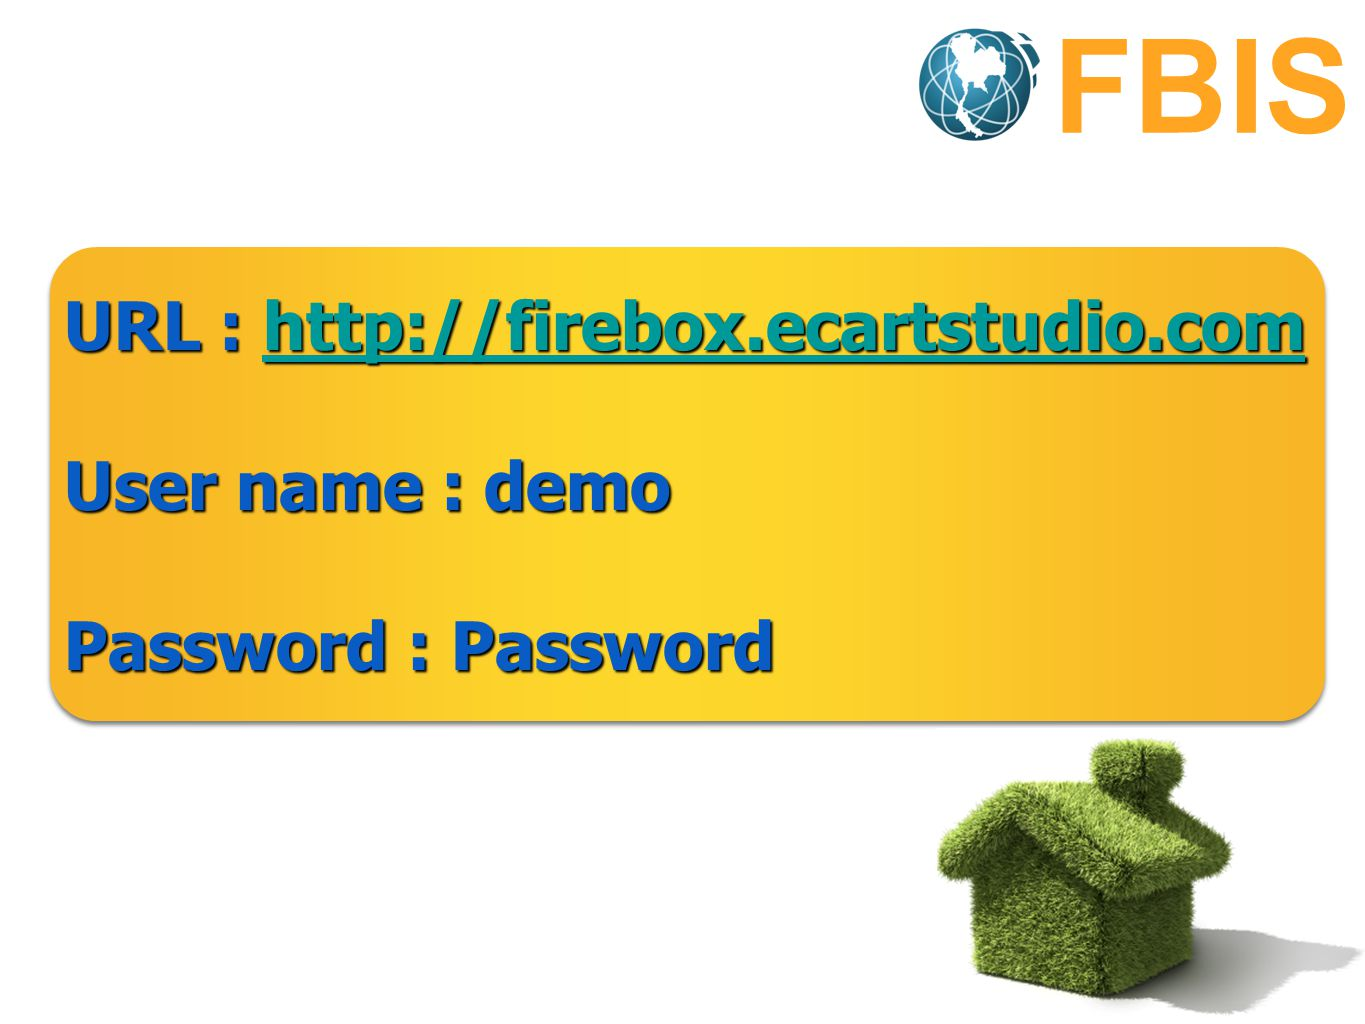 URL : http://firebox.ecartstudio.com http://firebox.ecartstudio.com User name : demo Password : Password URL : http://firebox.ecartstudio.com http://firebox.ecartstudio.com User name : demo Password : Password FBIS